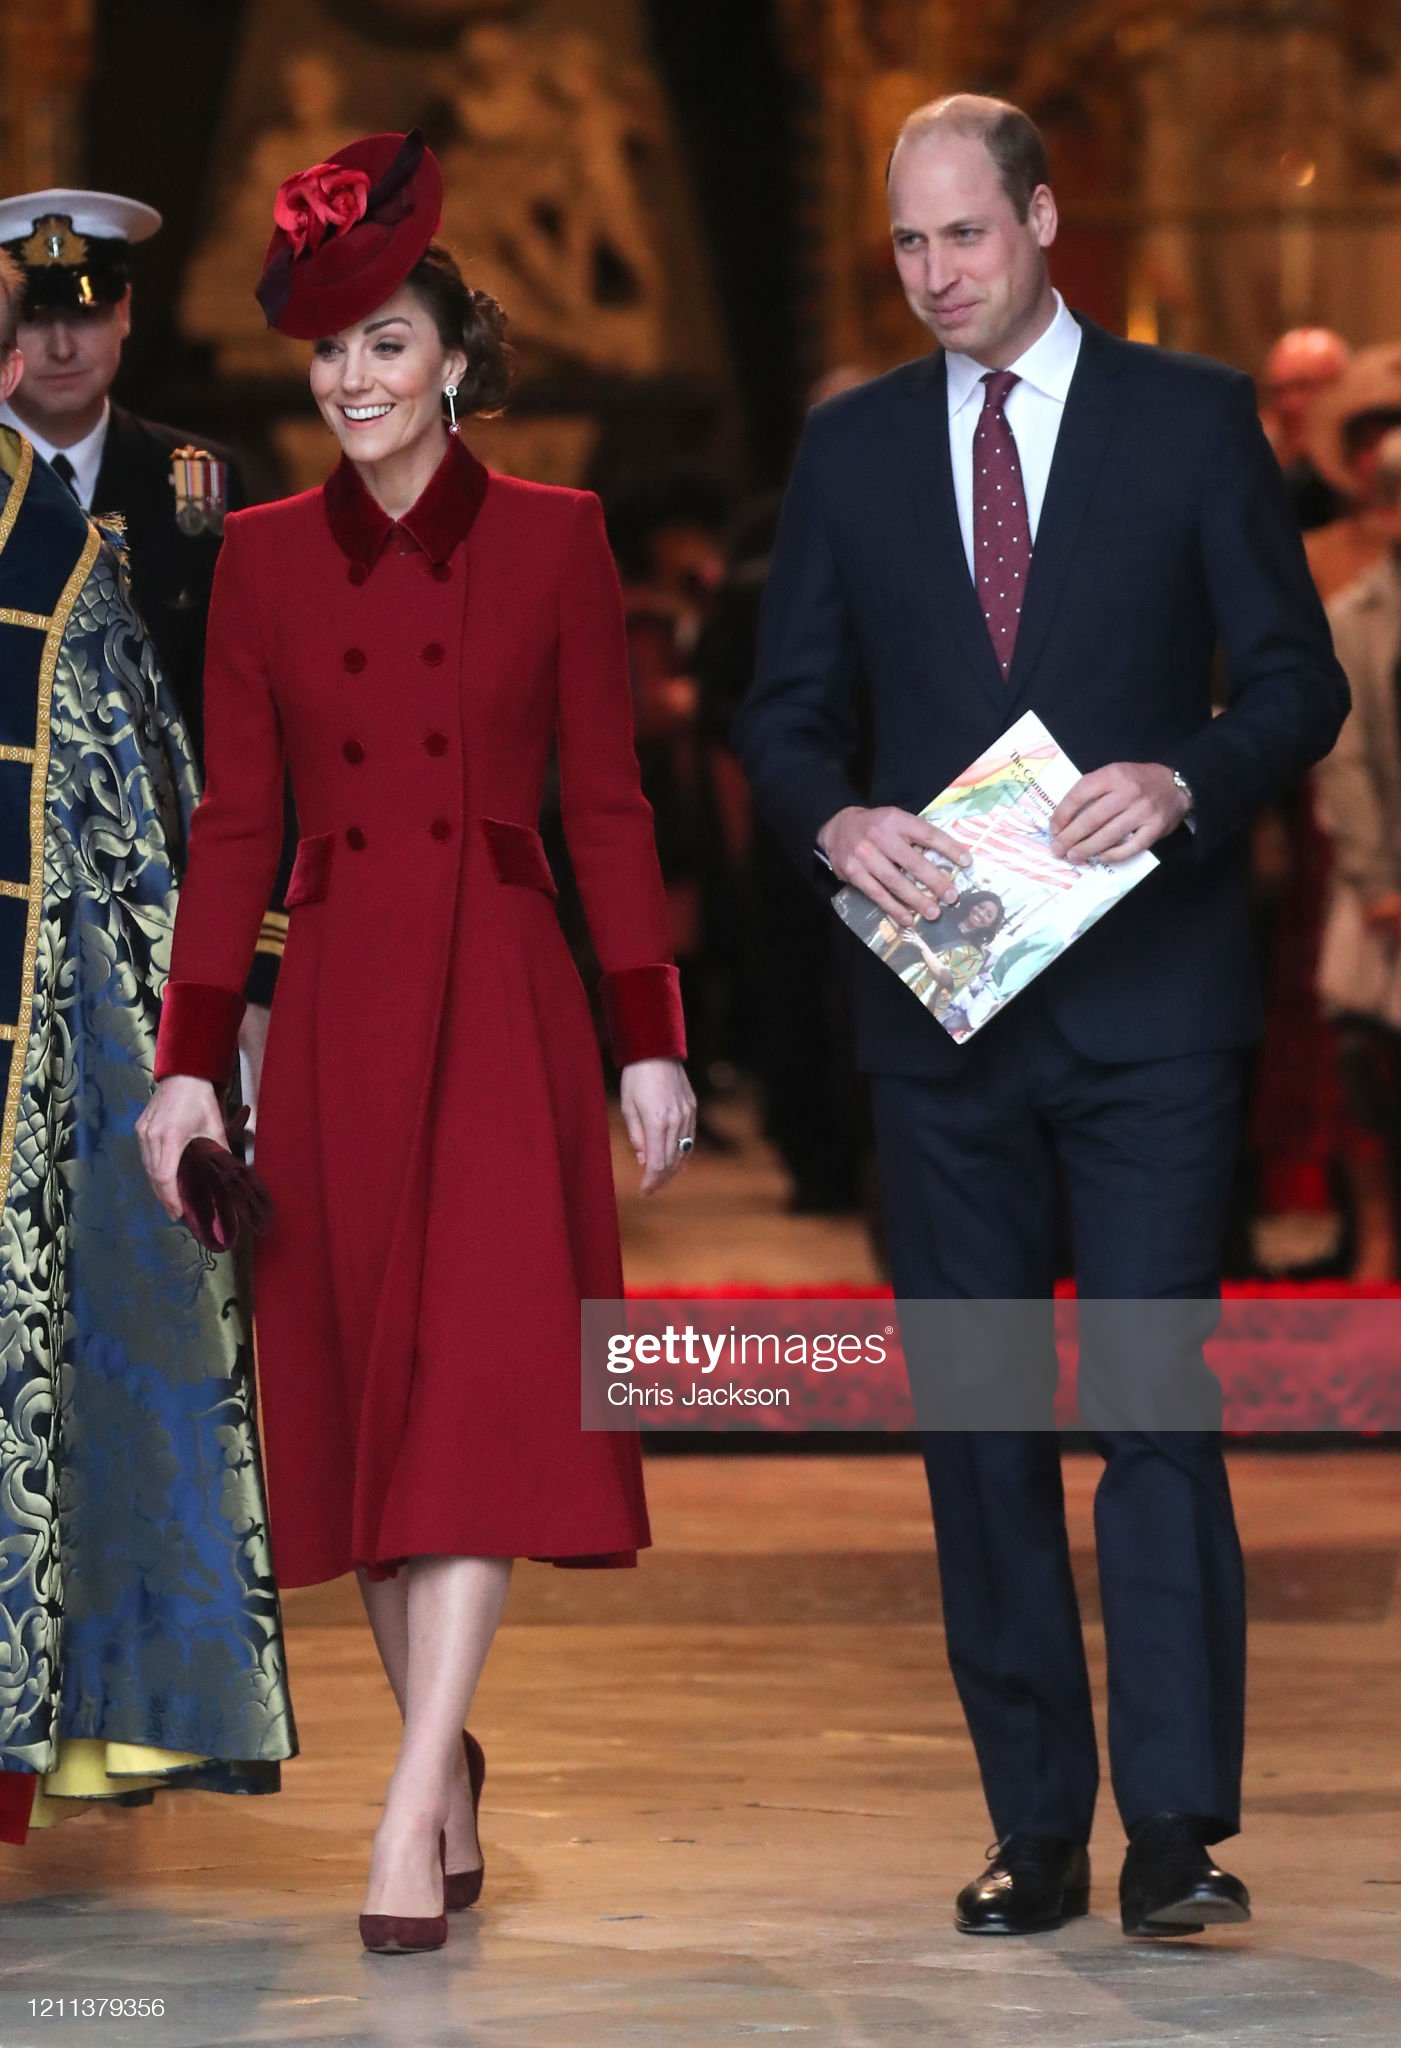 https://media.gettyimages.com/photos/catherine-duchess-of-cambridge-and-prince-william-duke-of-cambridge-picture-id1211379356?s=2048x2048